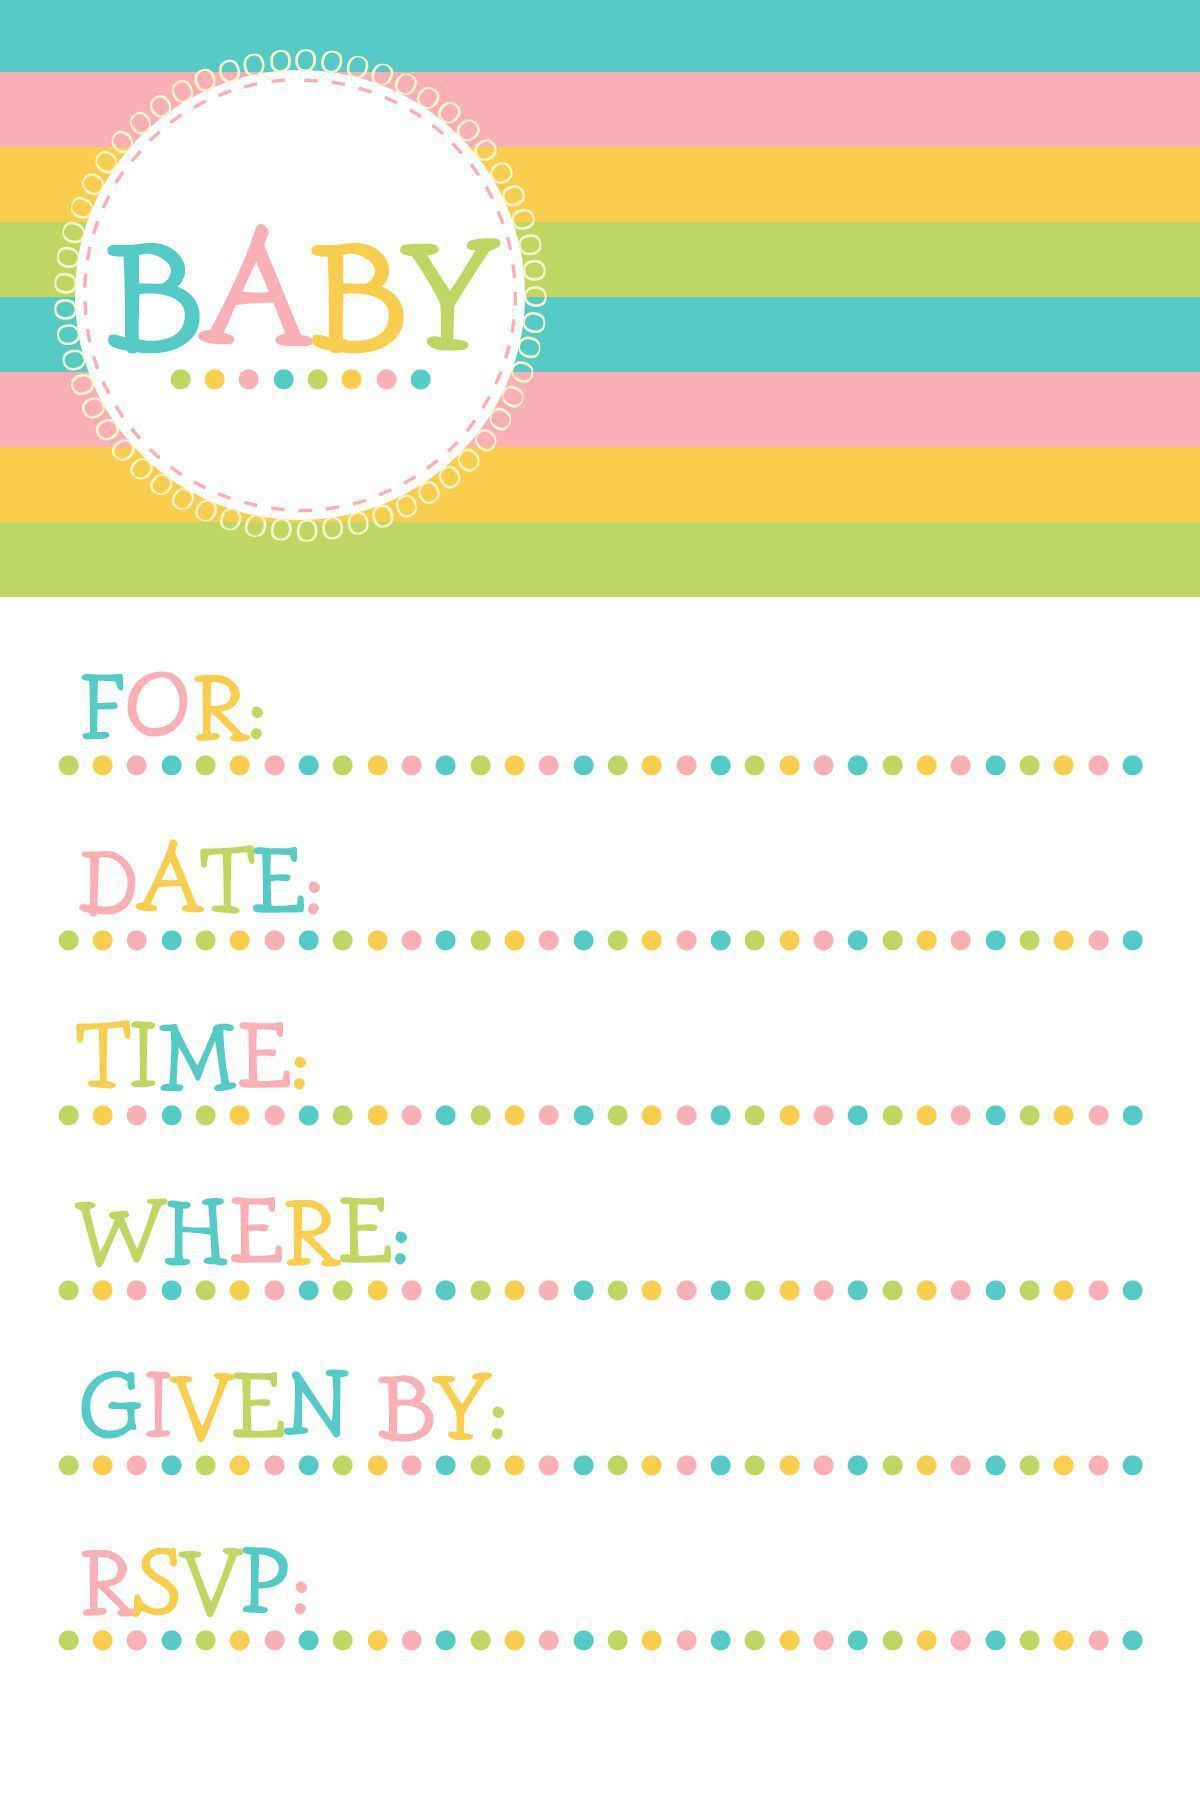 004 Magnificent Baby Shower Invitation Template Microsoft Word Photo  Free EditableFull